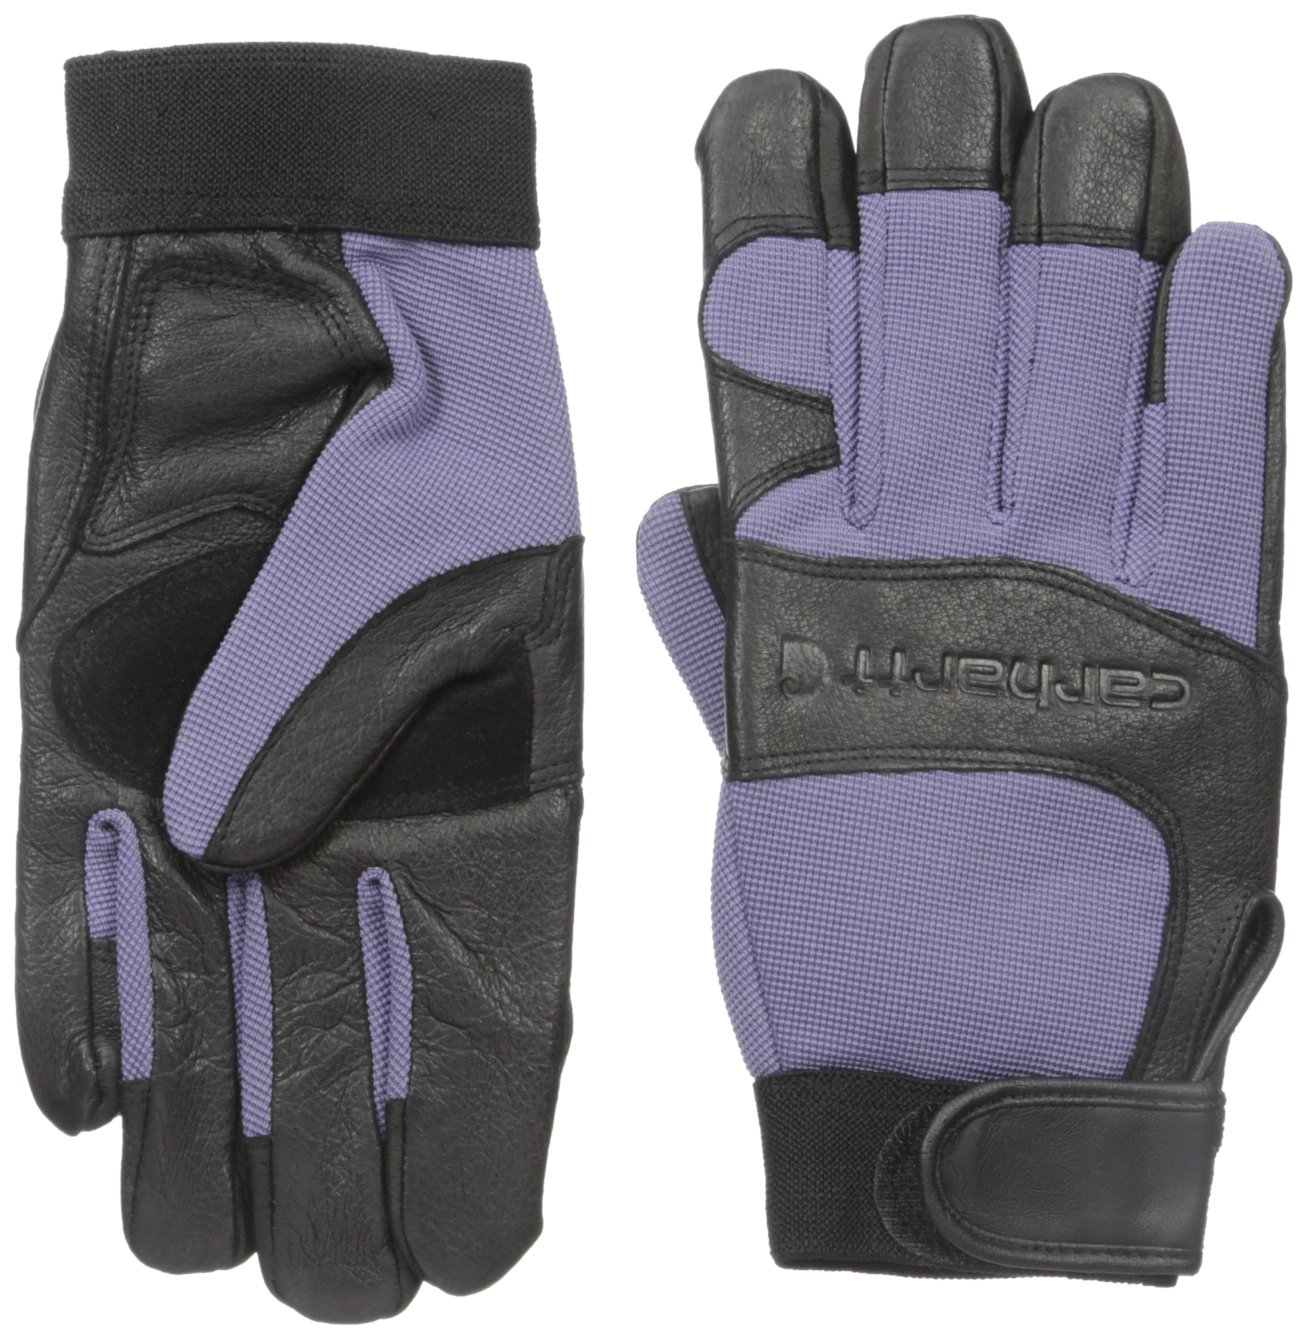 Carhartt Women's Dex II High Dexterity Work Glove with System 5 Palm and Knuckle Protection, blue dusk black, Small